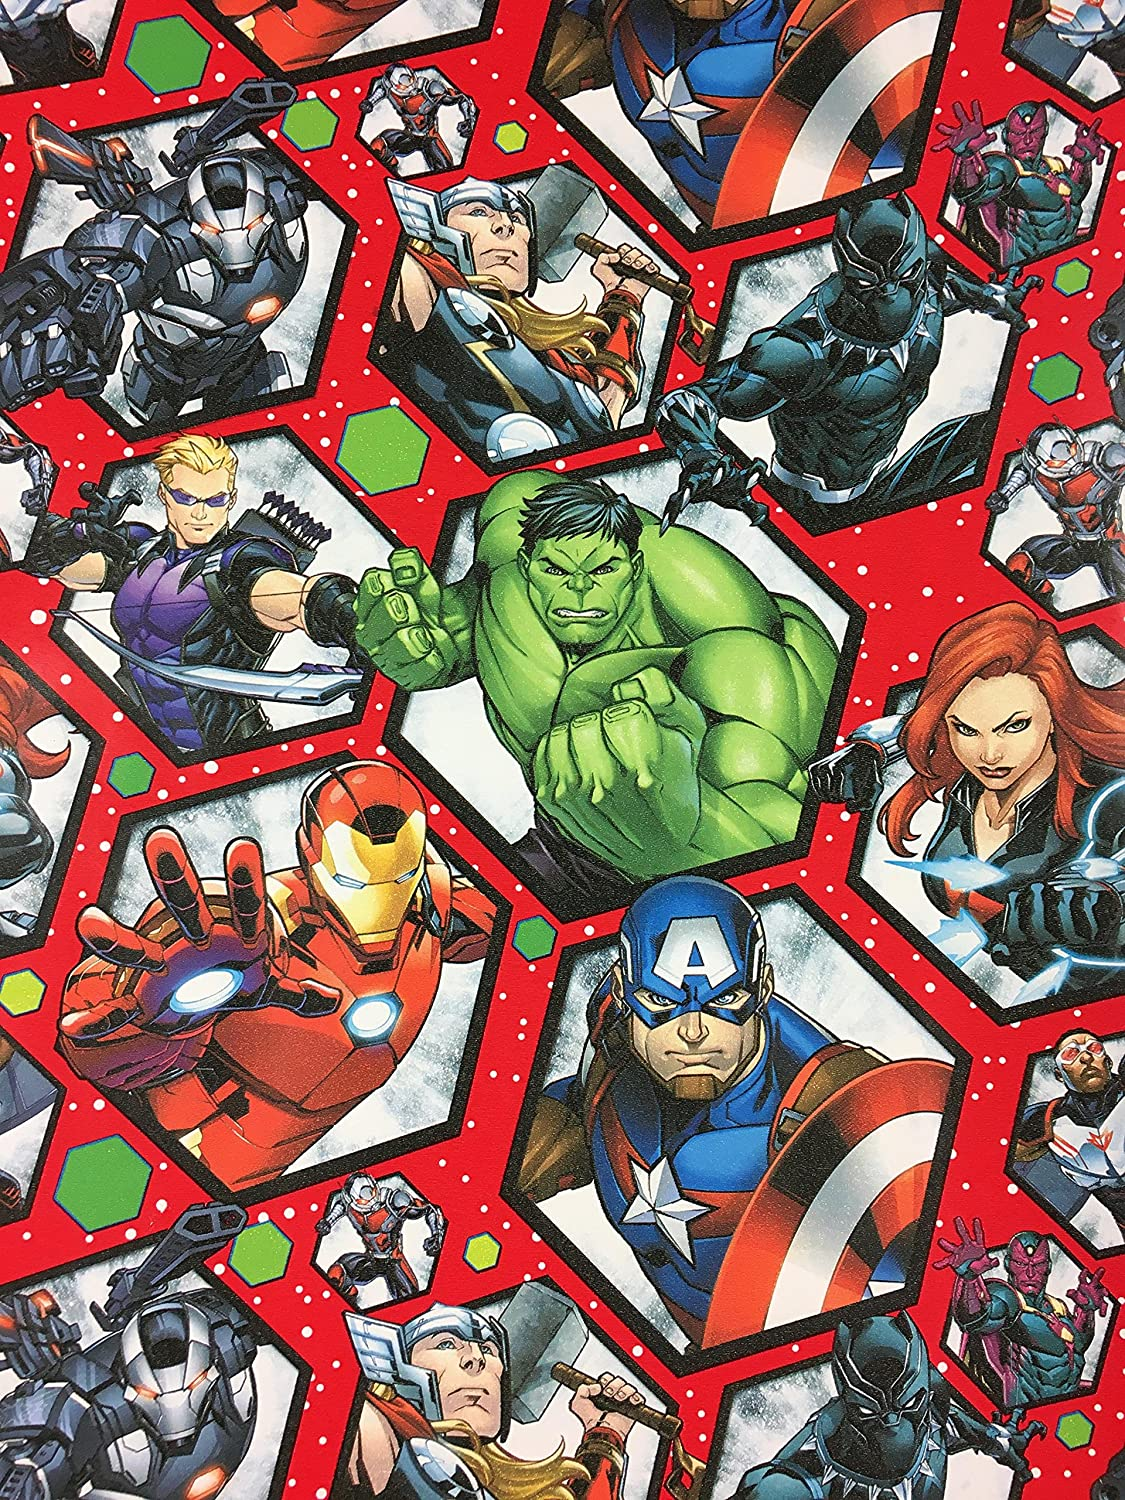 Marvel Christmas.Amazon Com Marvel Avengers Christmas Gift Wrapping Paper